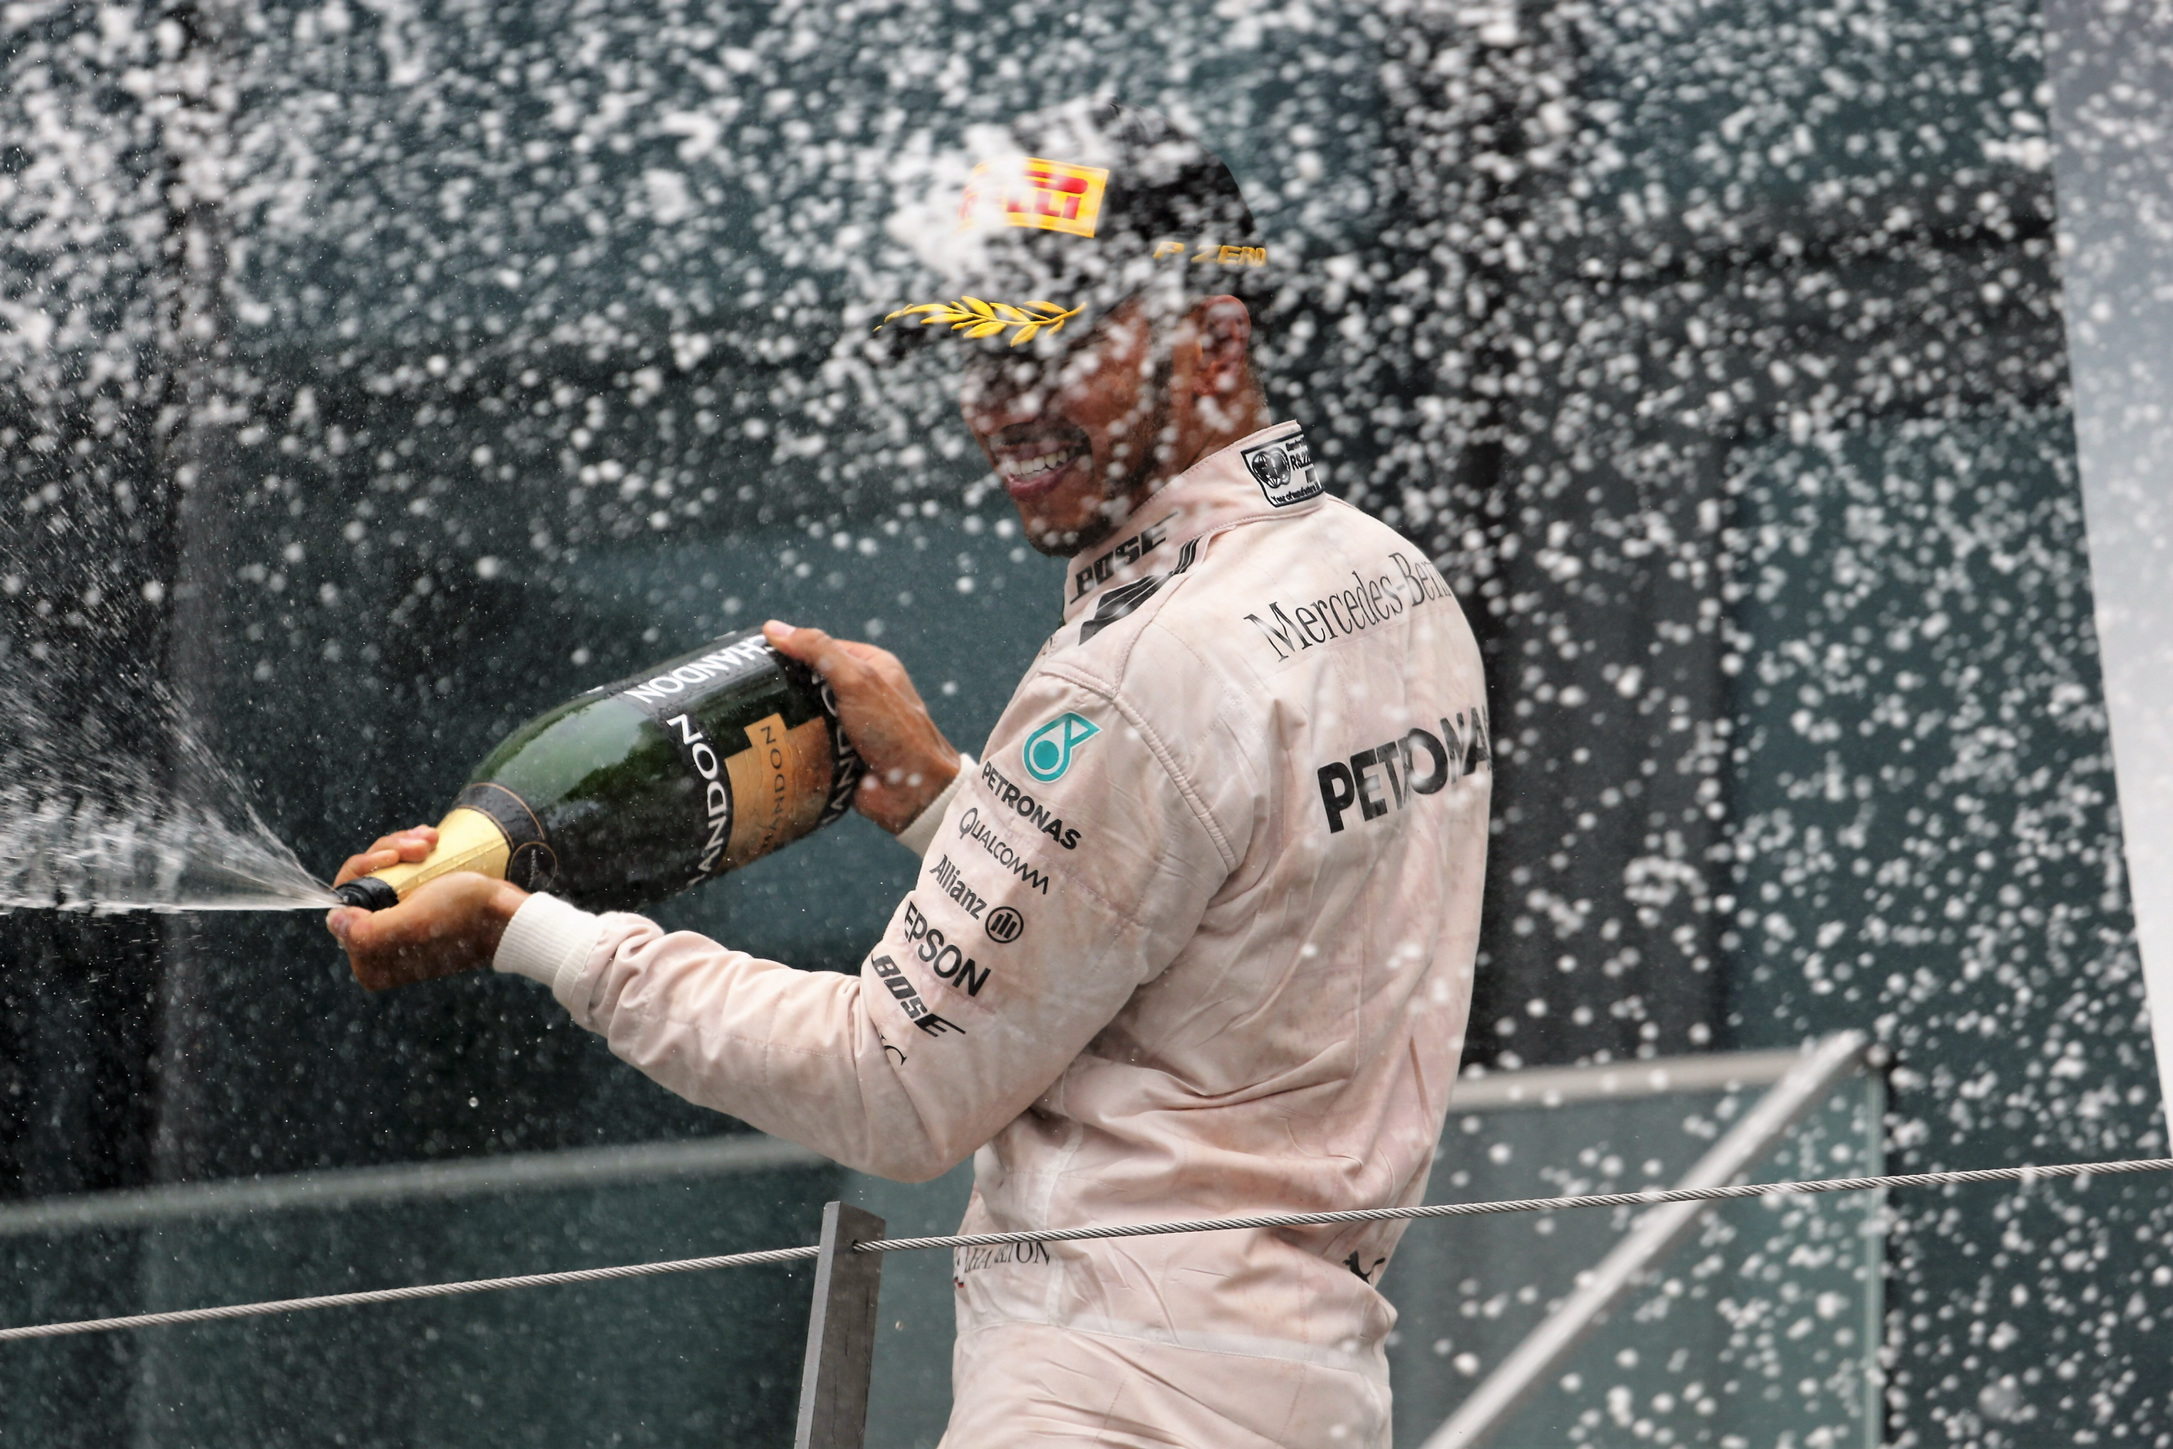 Hamilton wins home grand prix in Silverstone